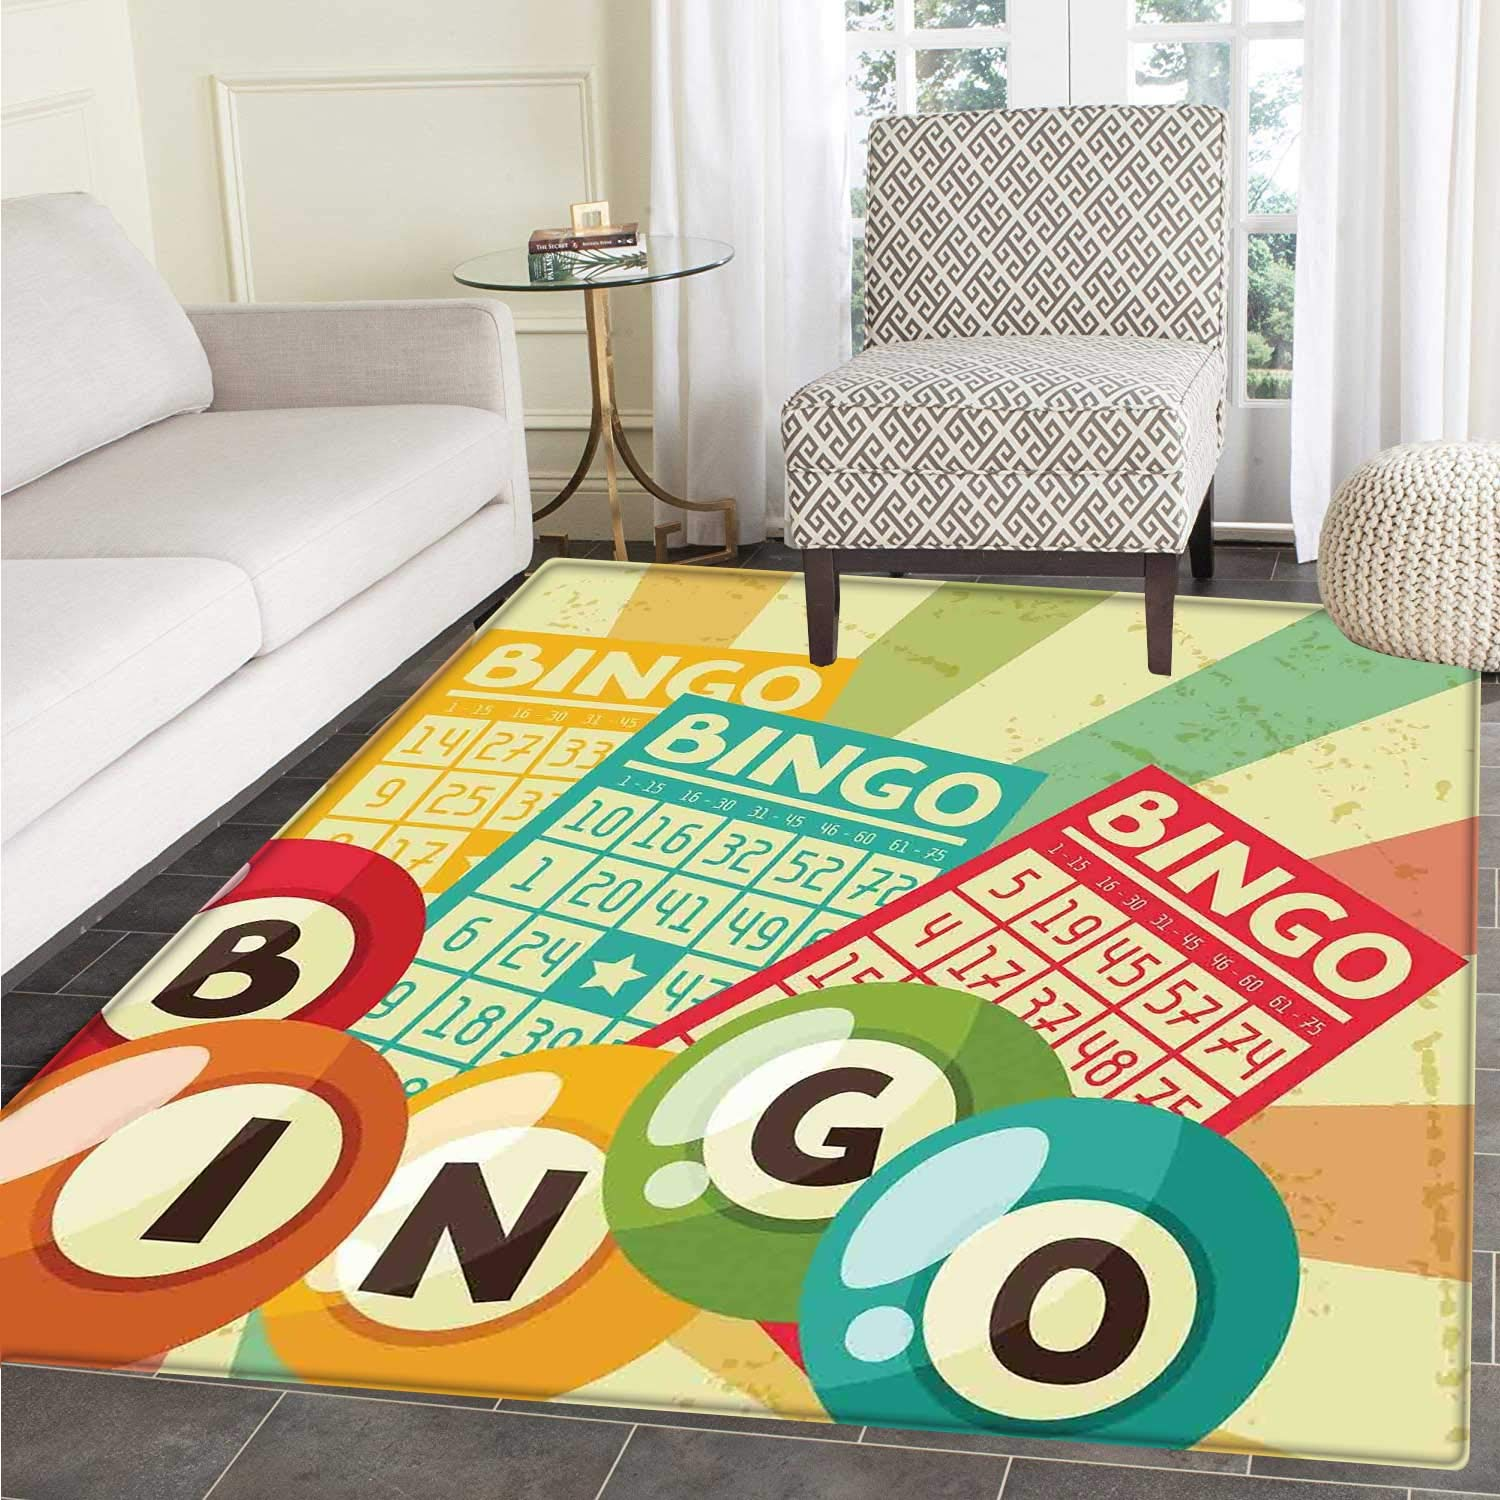 Vintage Anti-Skid Area Rug Bingo Game with Ball and Cards Pop Art Stylized Lottery Hobby Celebration Theme Soft Area Rugs 4'x6' Multicolor by Carl Morris